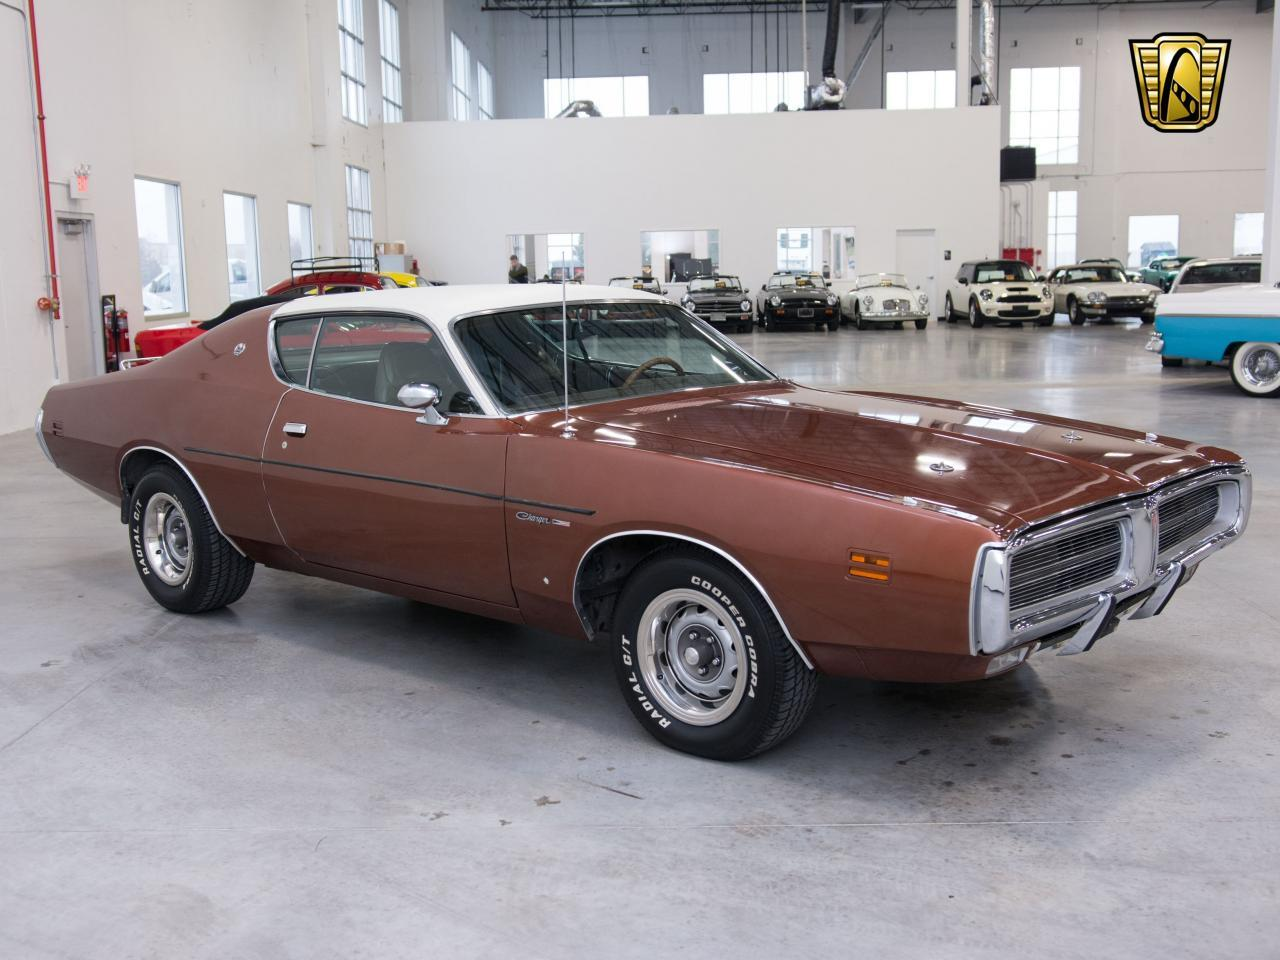 Large Picture of Classic 1971 Charger located in Kenosha Wisconsin - $29,995.00 - KEDX